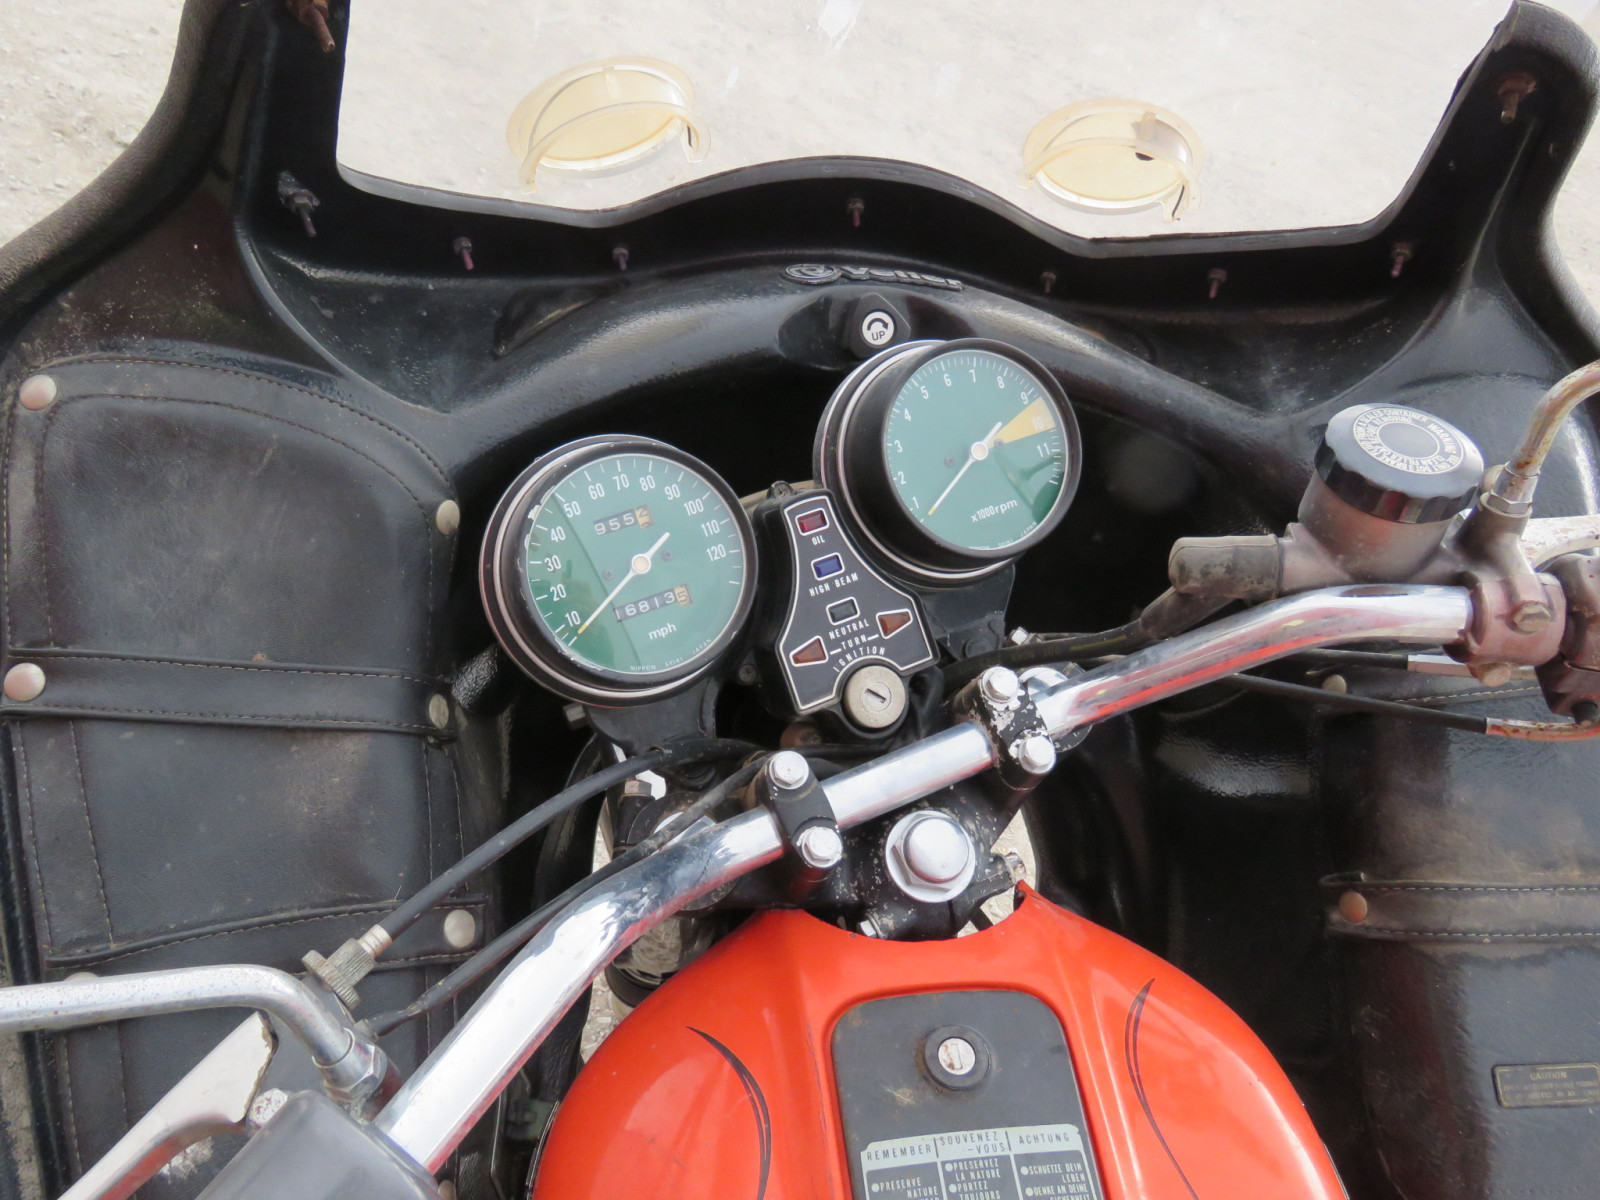 1975 Honda 550 Four Motorcycle - Image 3